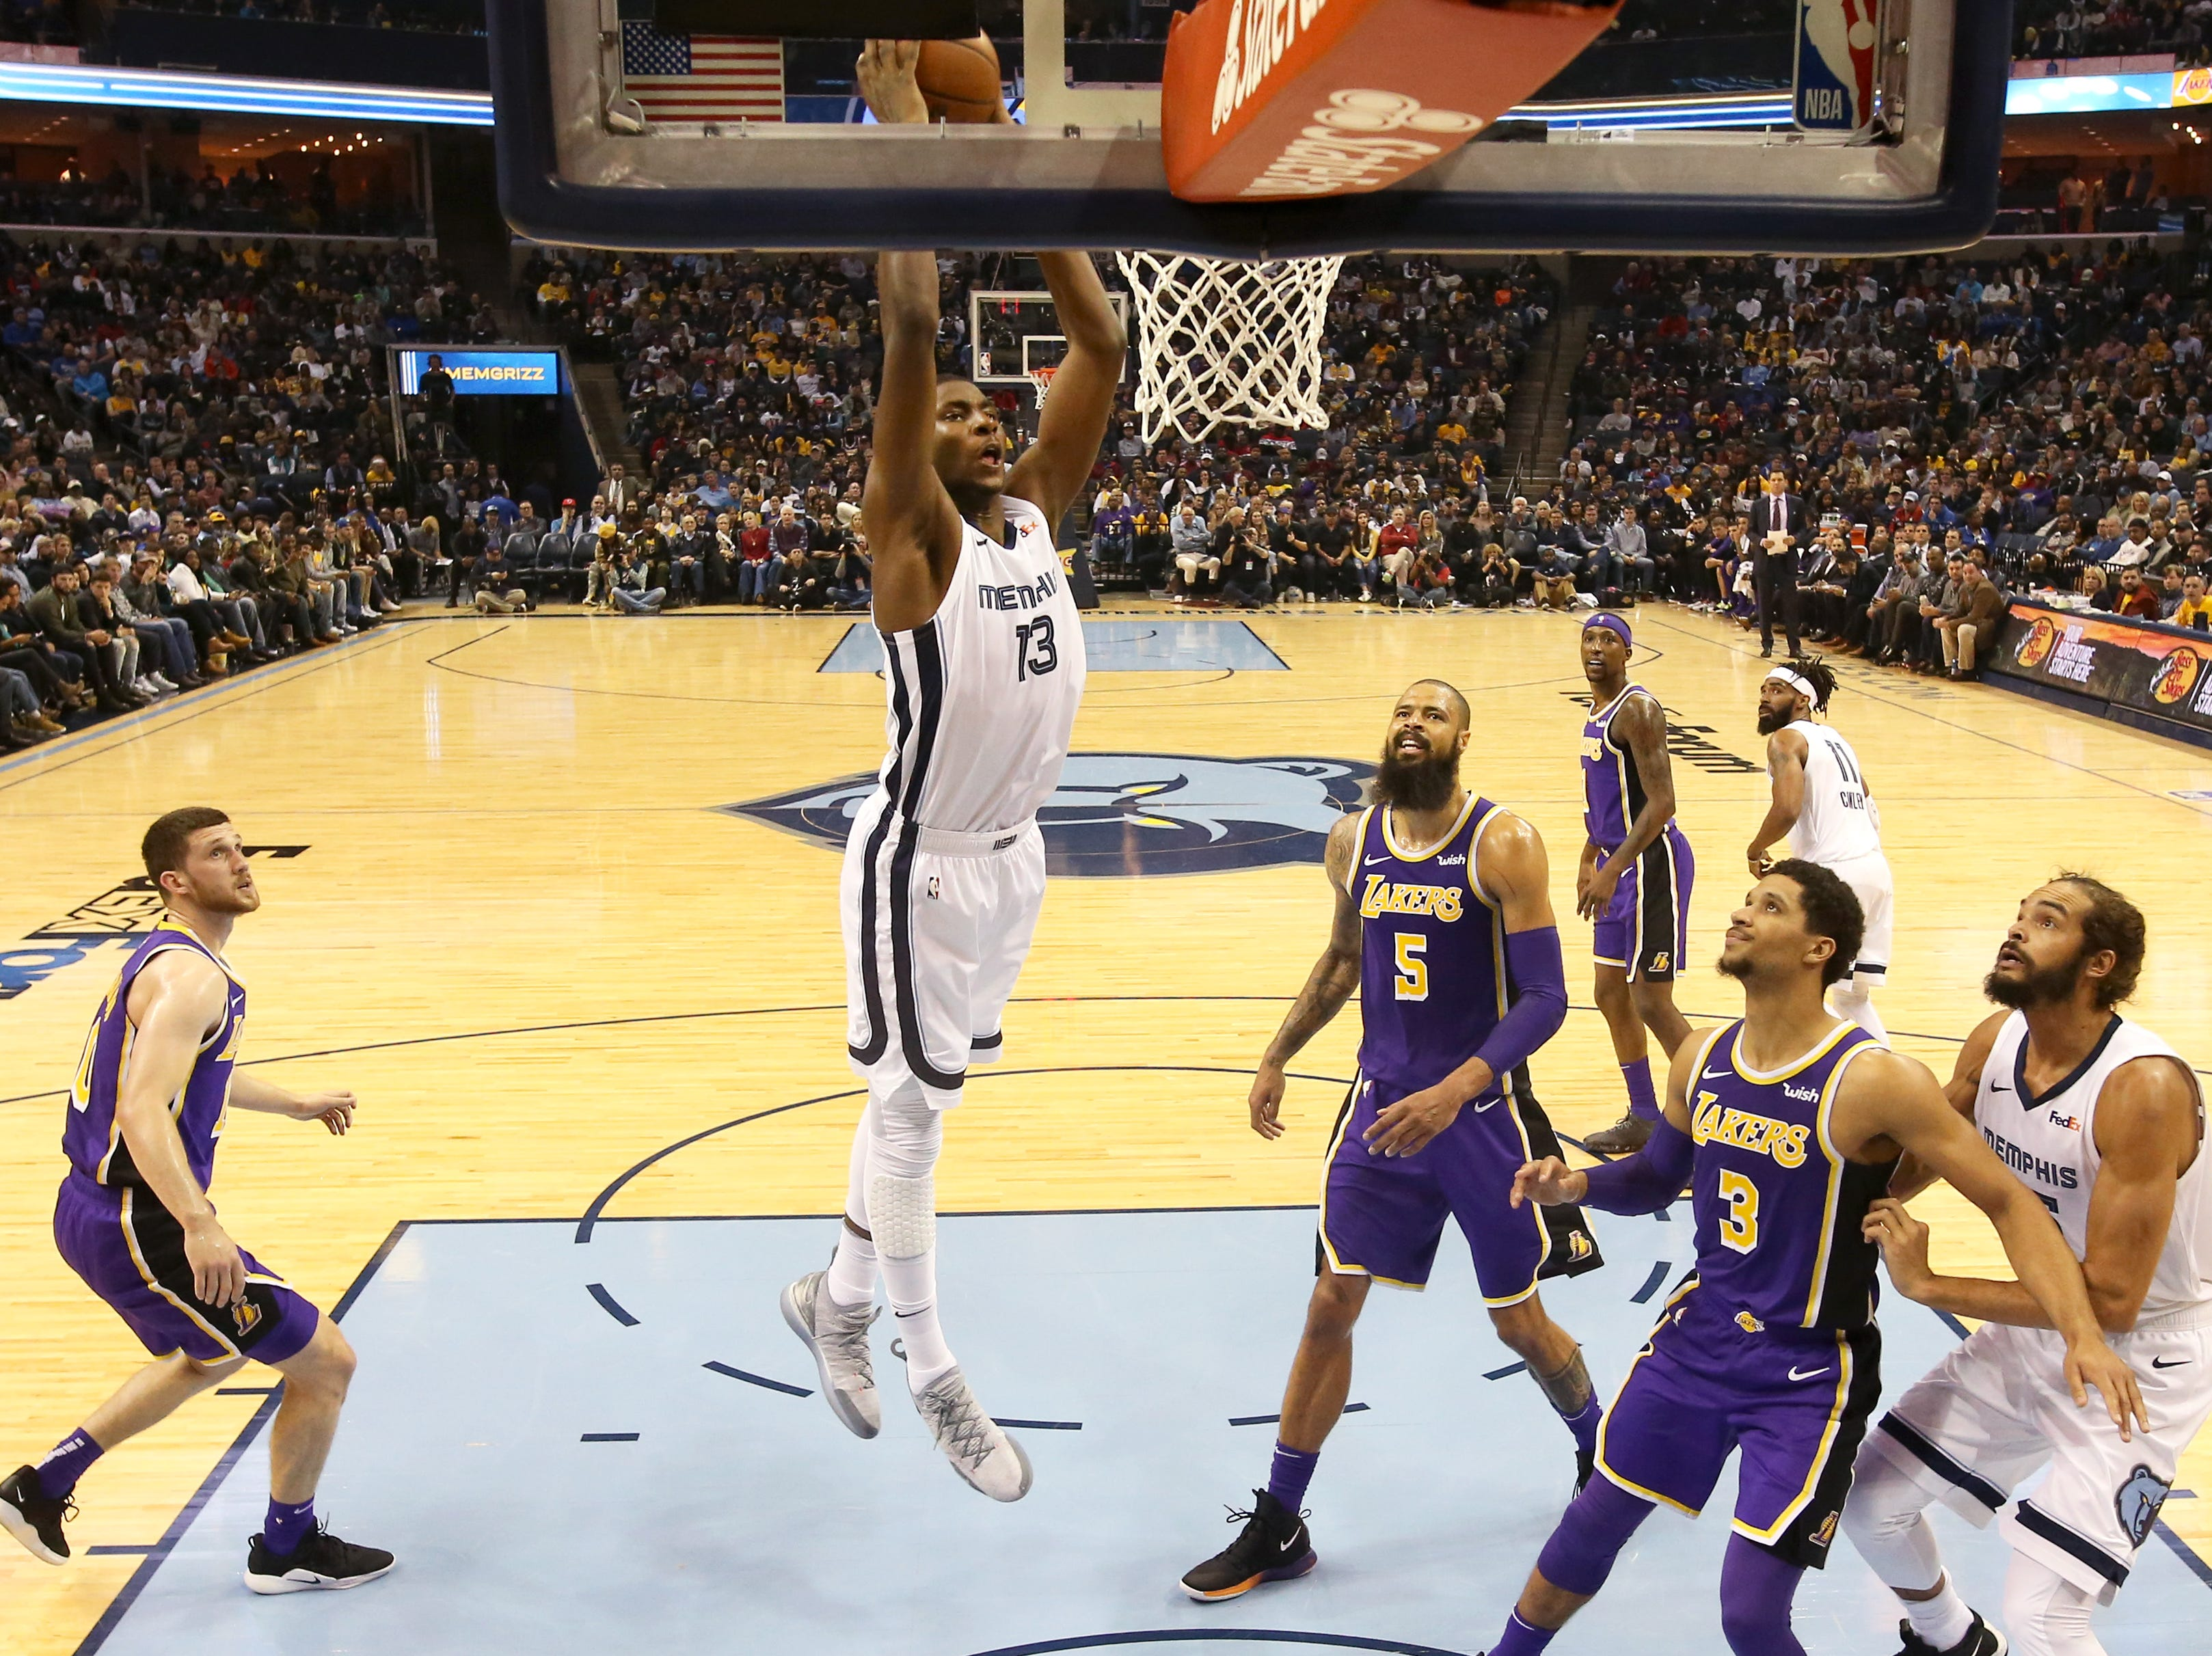 Memphis Grizzlies forward Jaren Jackson Jr. dunks the ball against the Los Angeles Lakers during their game at the FedExForum on Saturday, Dec. 8, 2018.